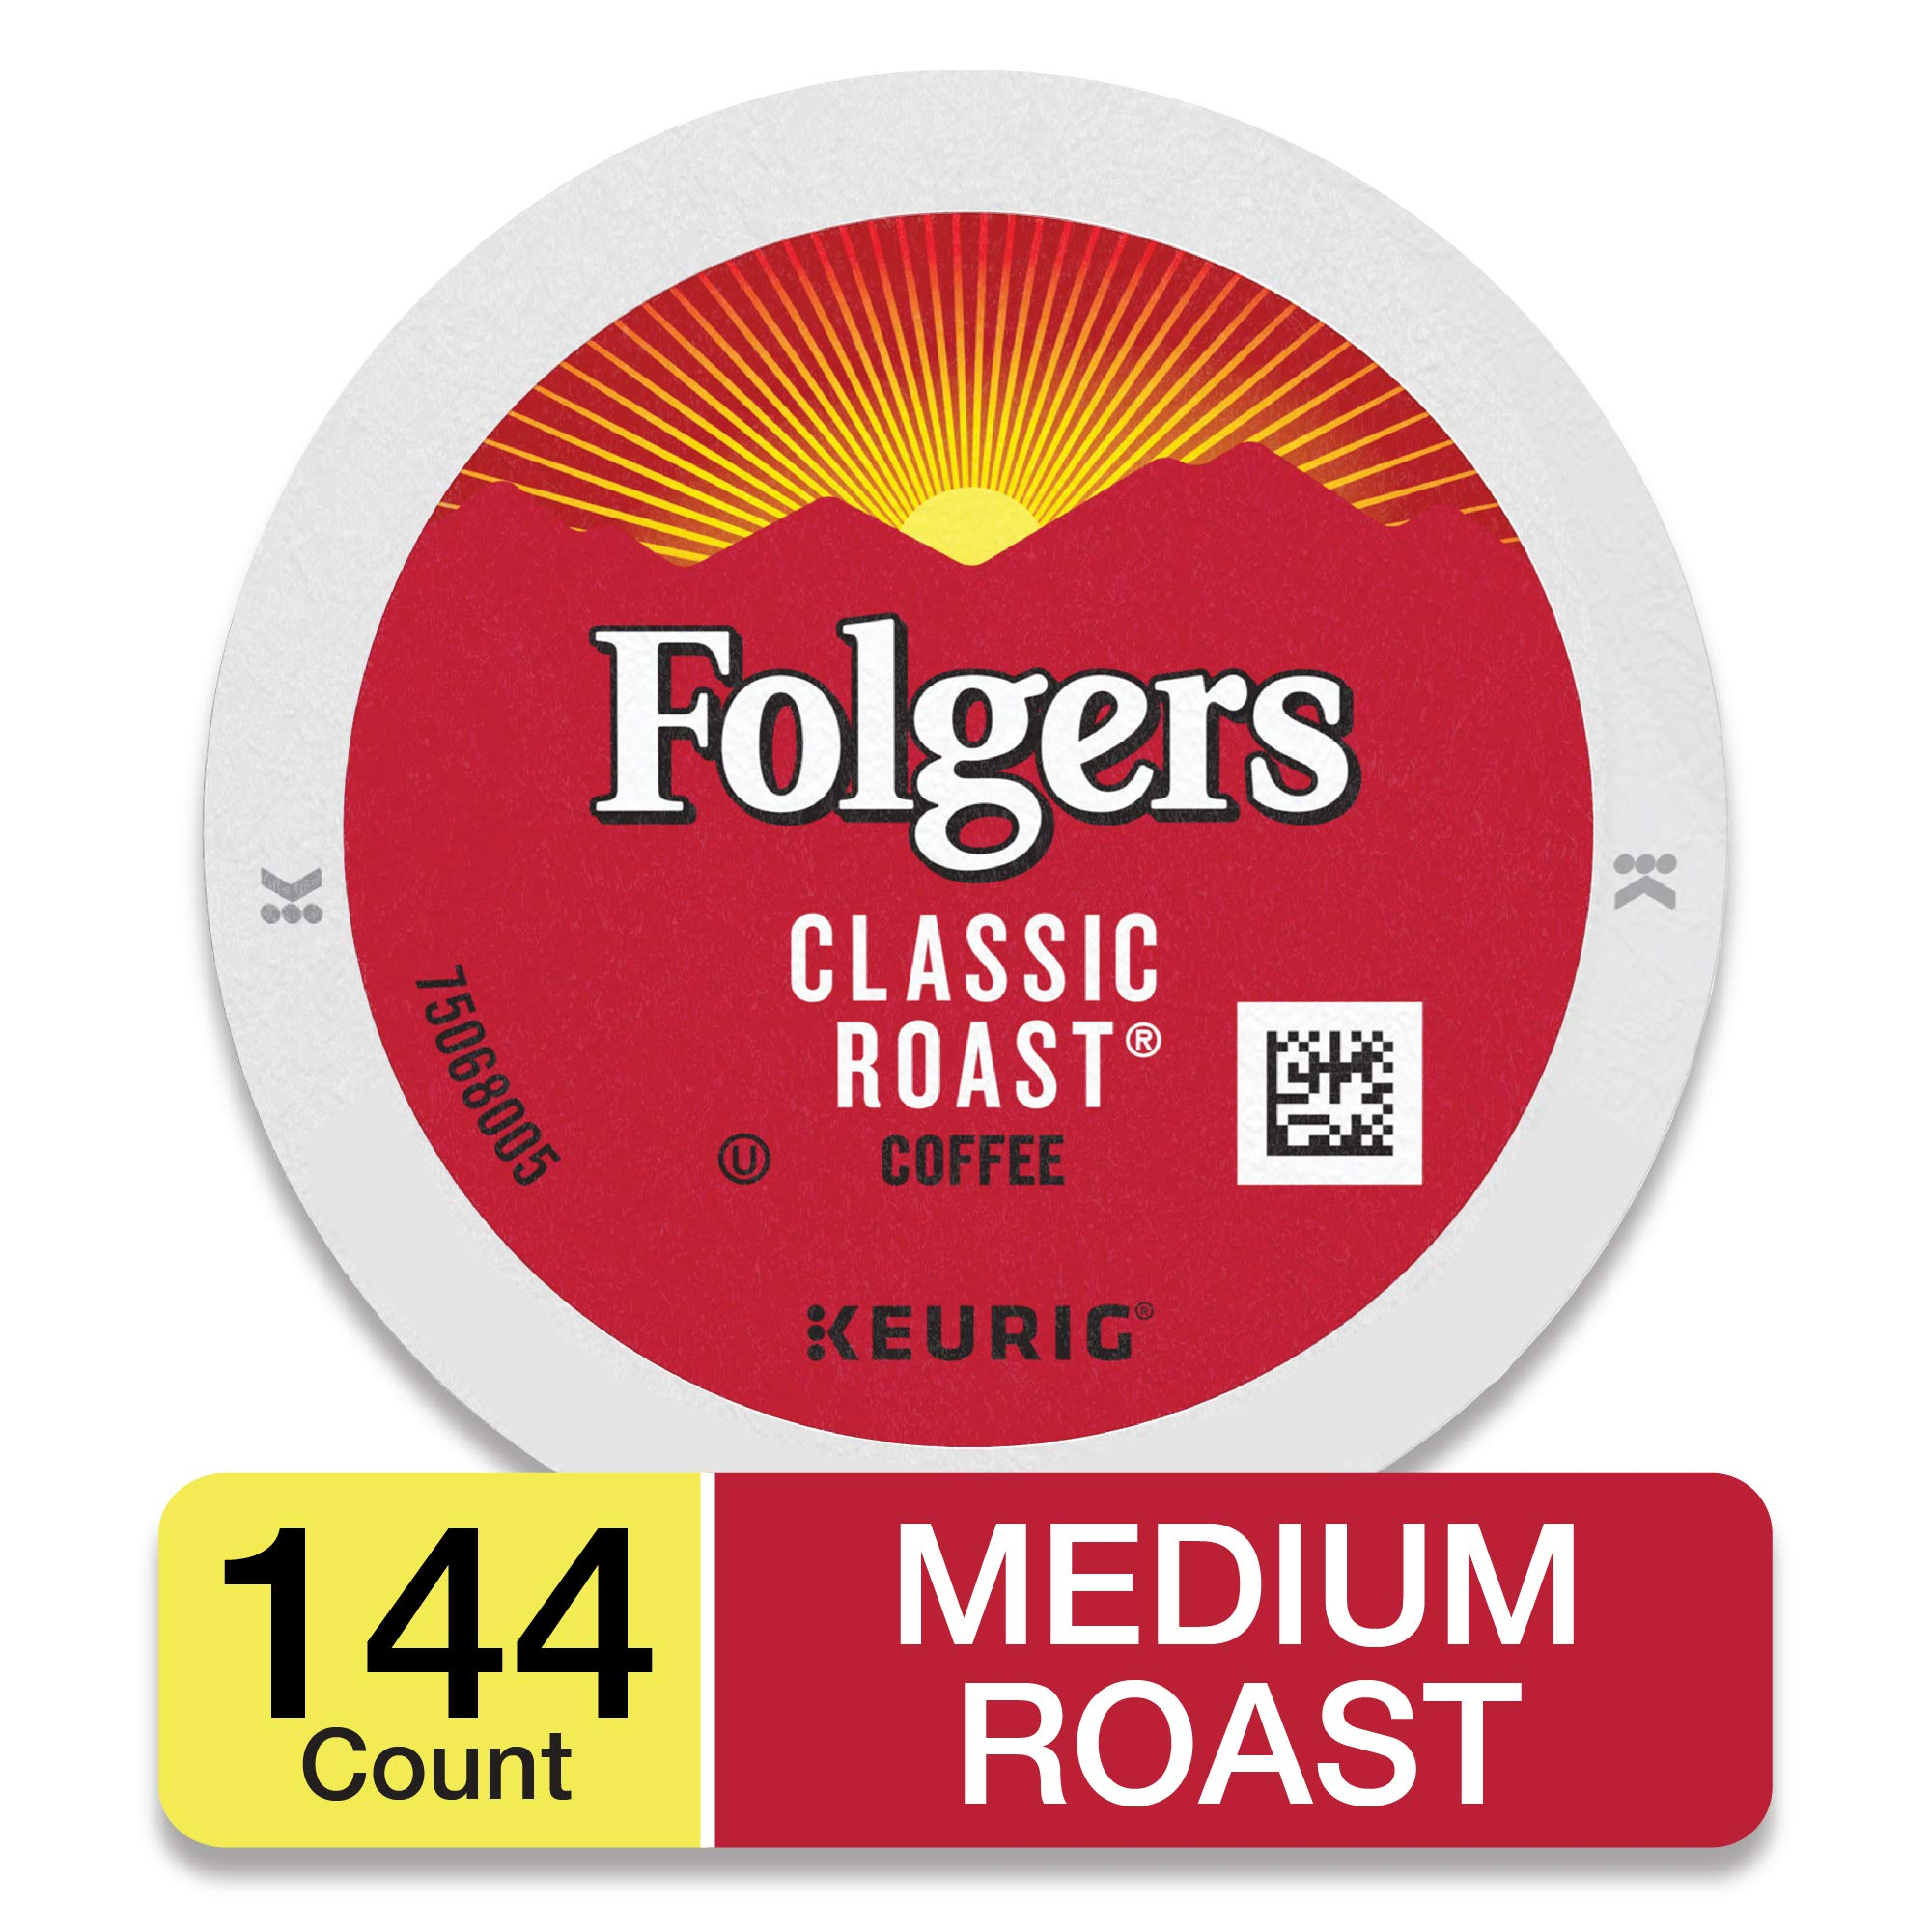 Folgers K Cups Classic Roast Coffee for Keurig Makers, Medium Roast, 144 Count by Folgers